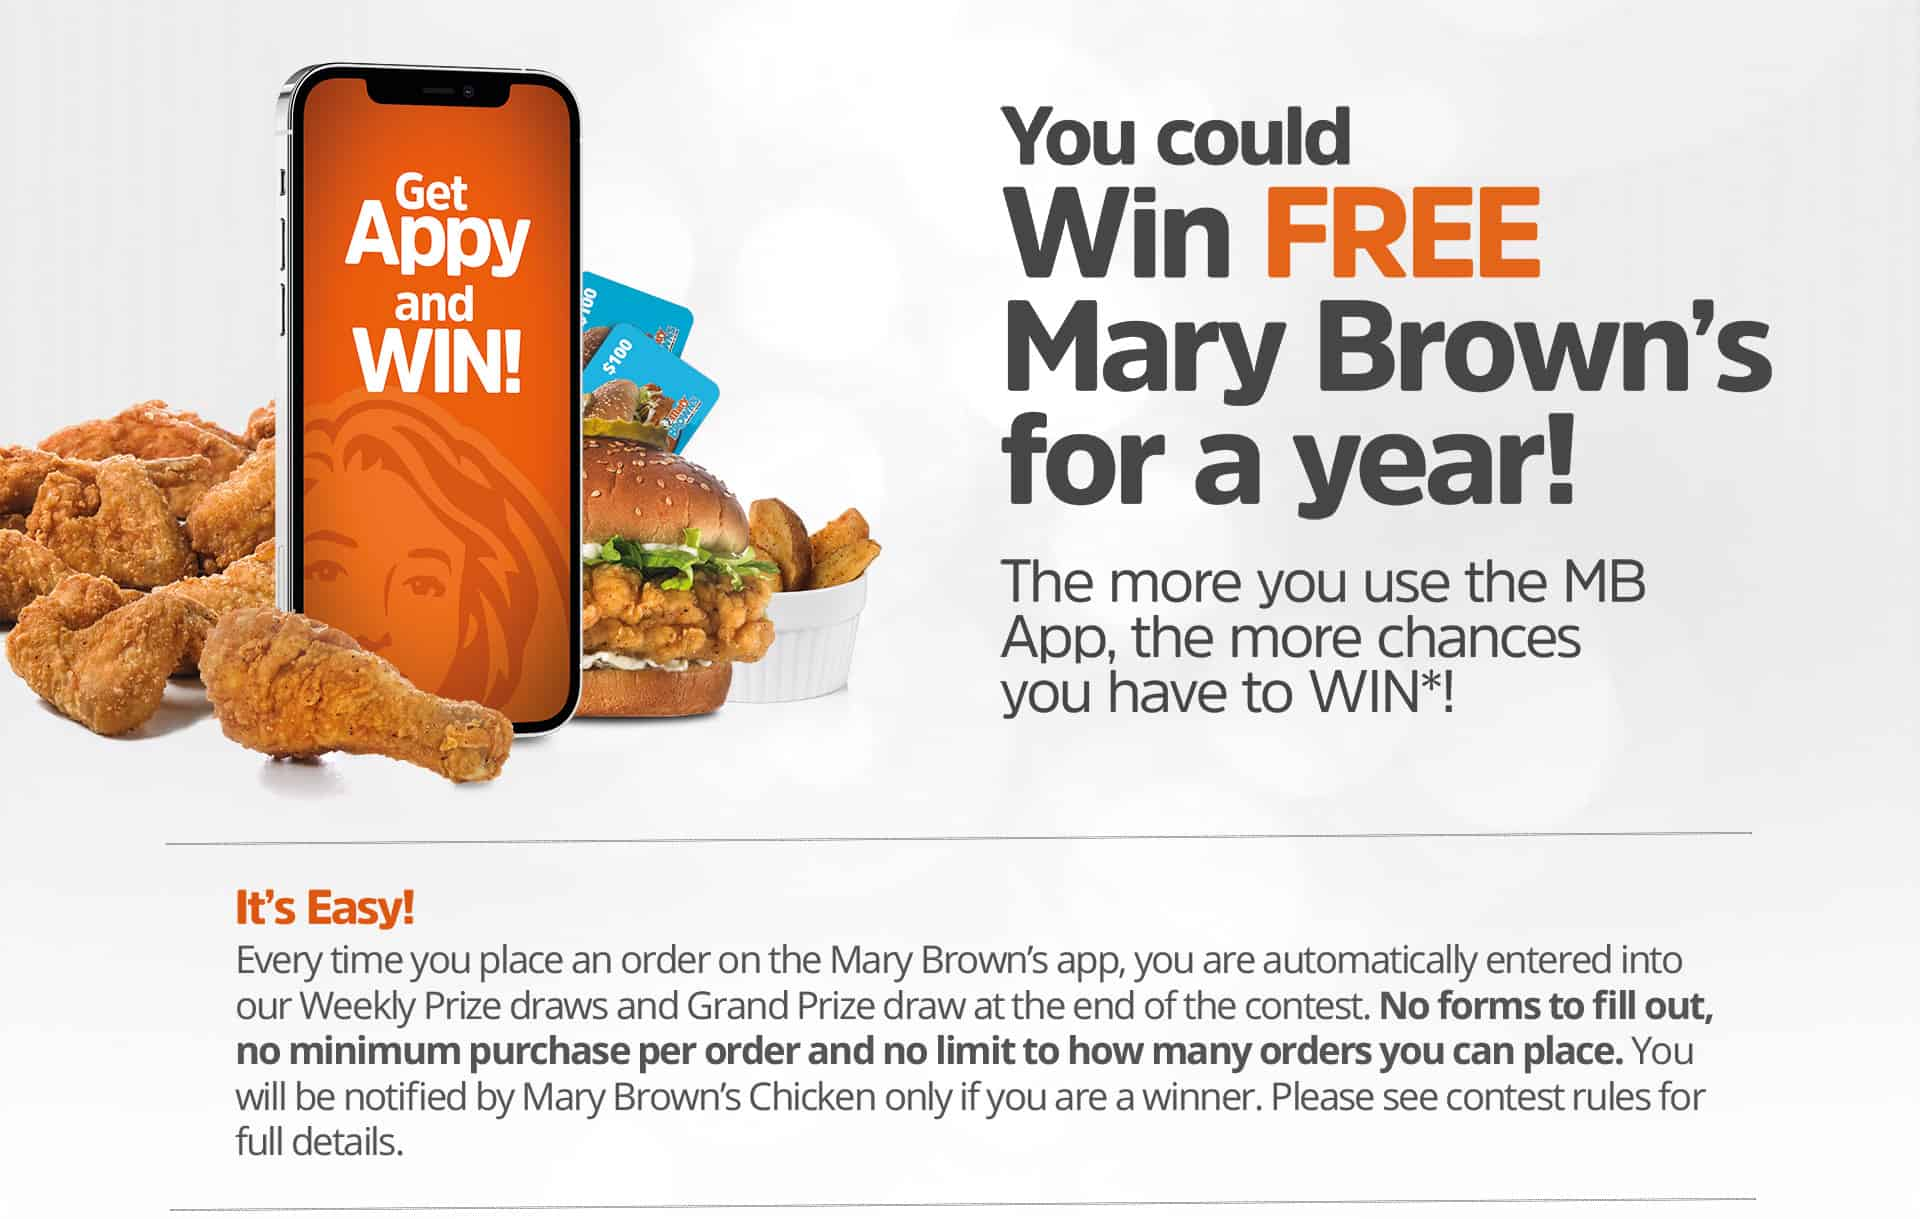 You Could Win Free Mary Brown's for a Year